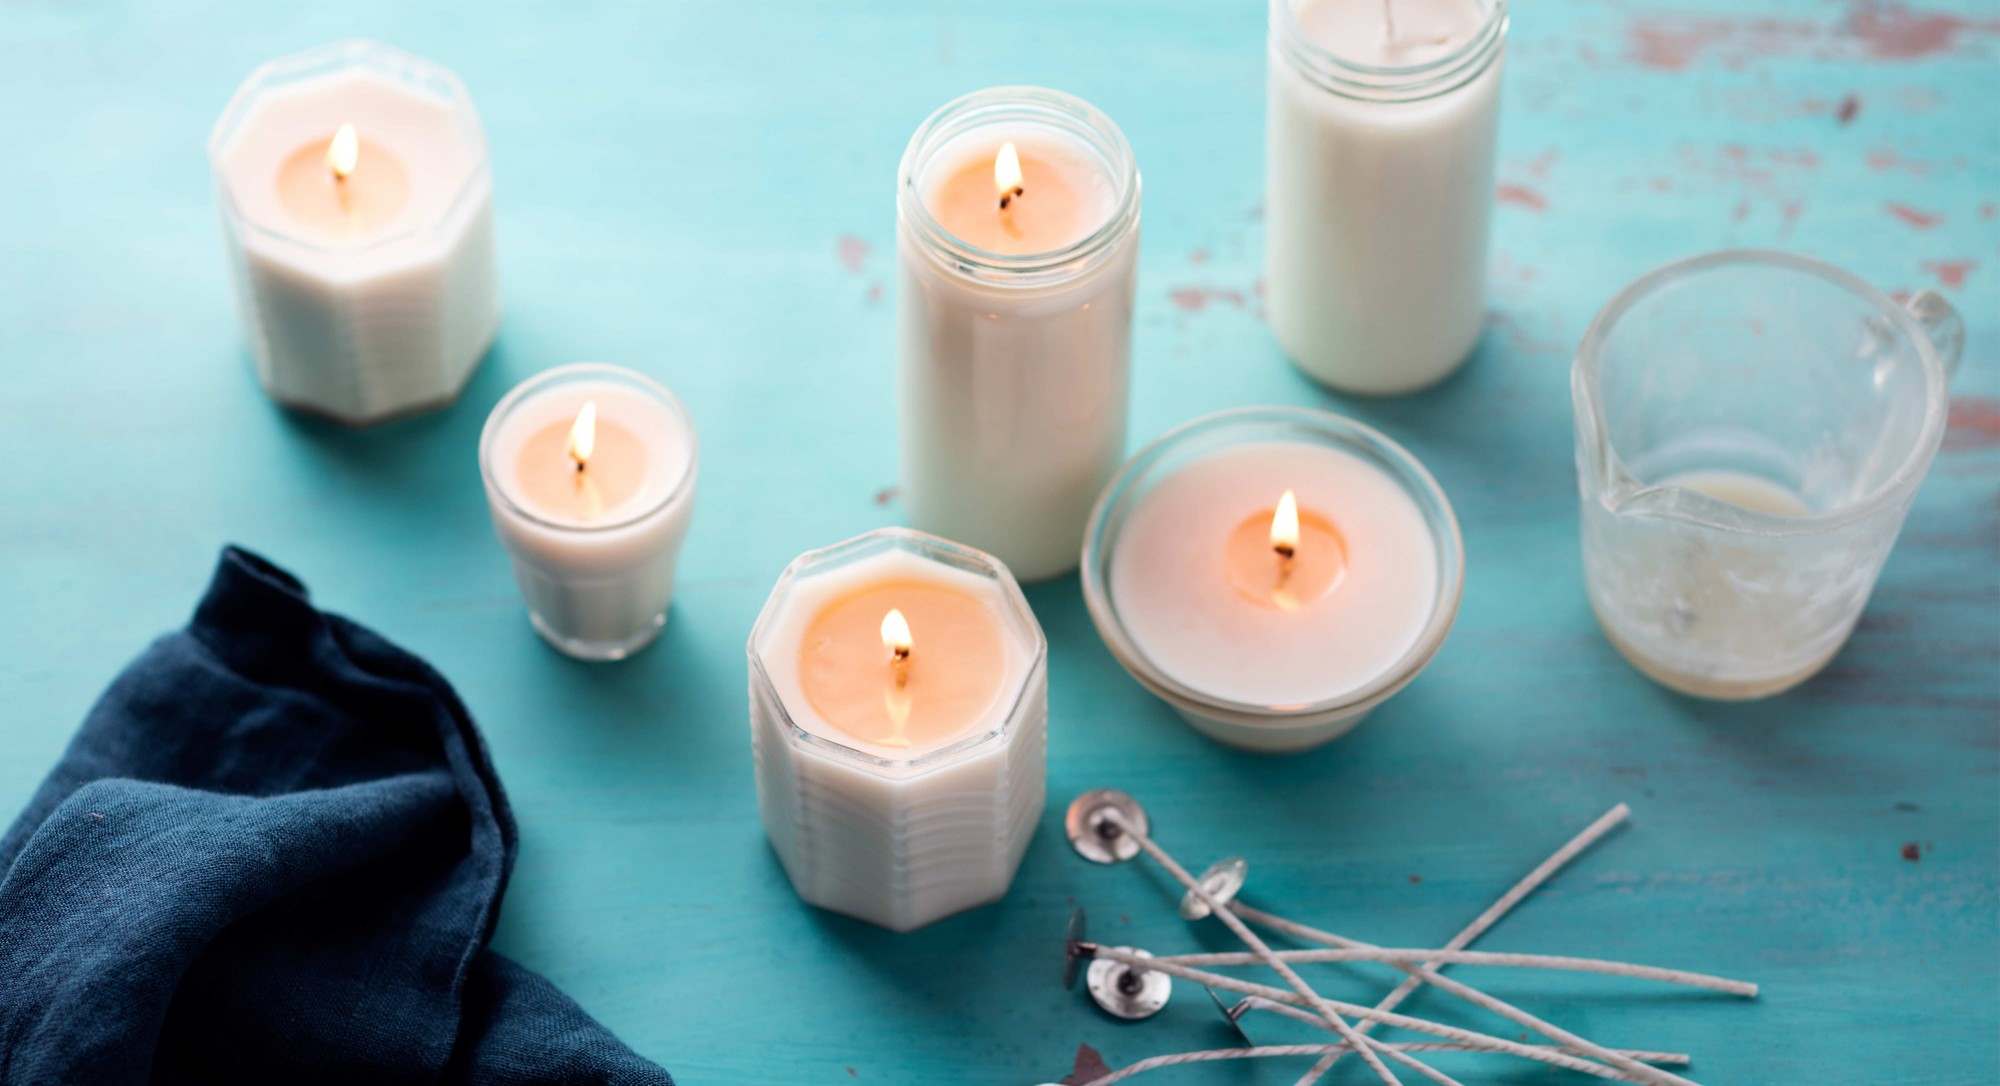 Make Your Own Scented Holiday Candles With Just 3 Ingredients